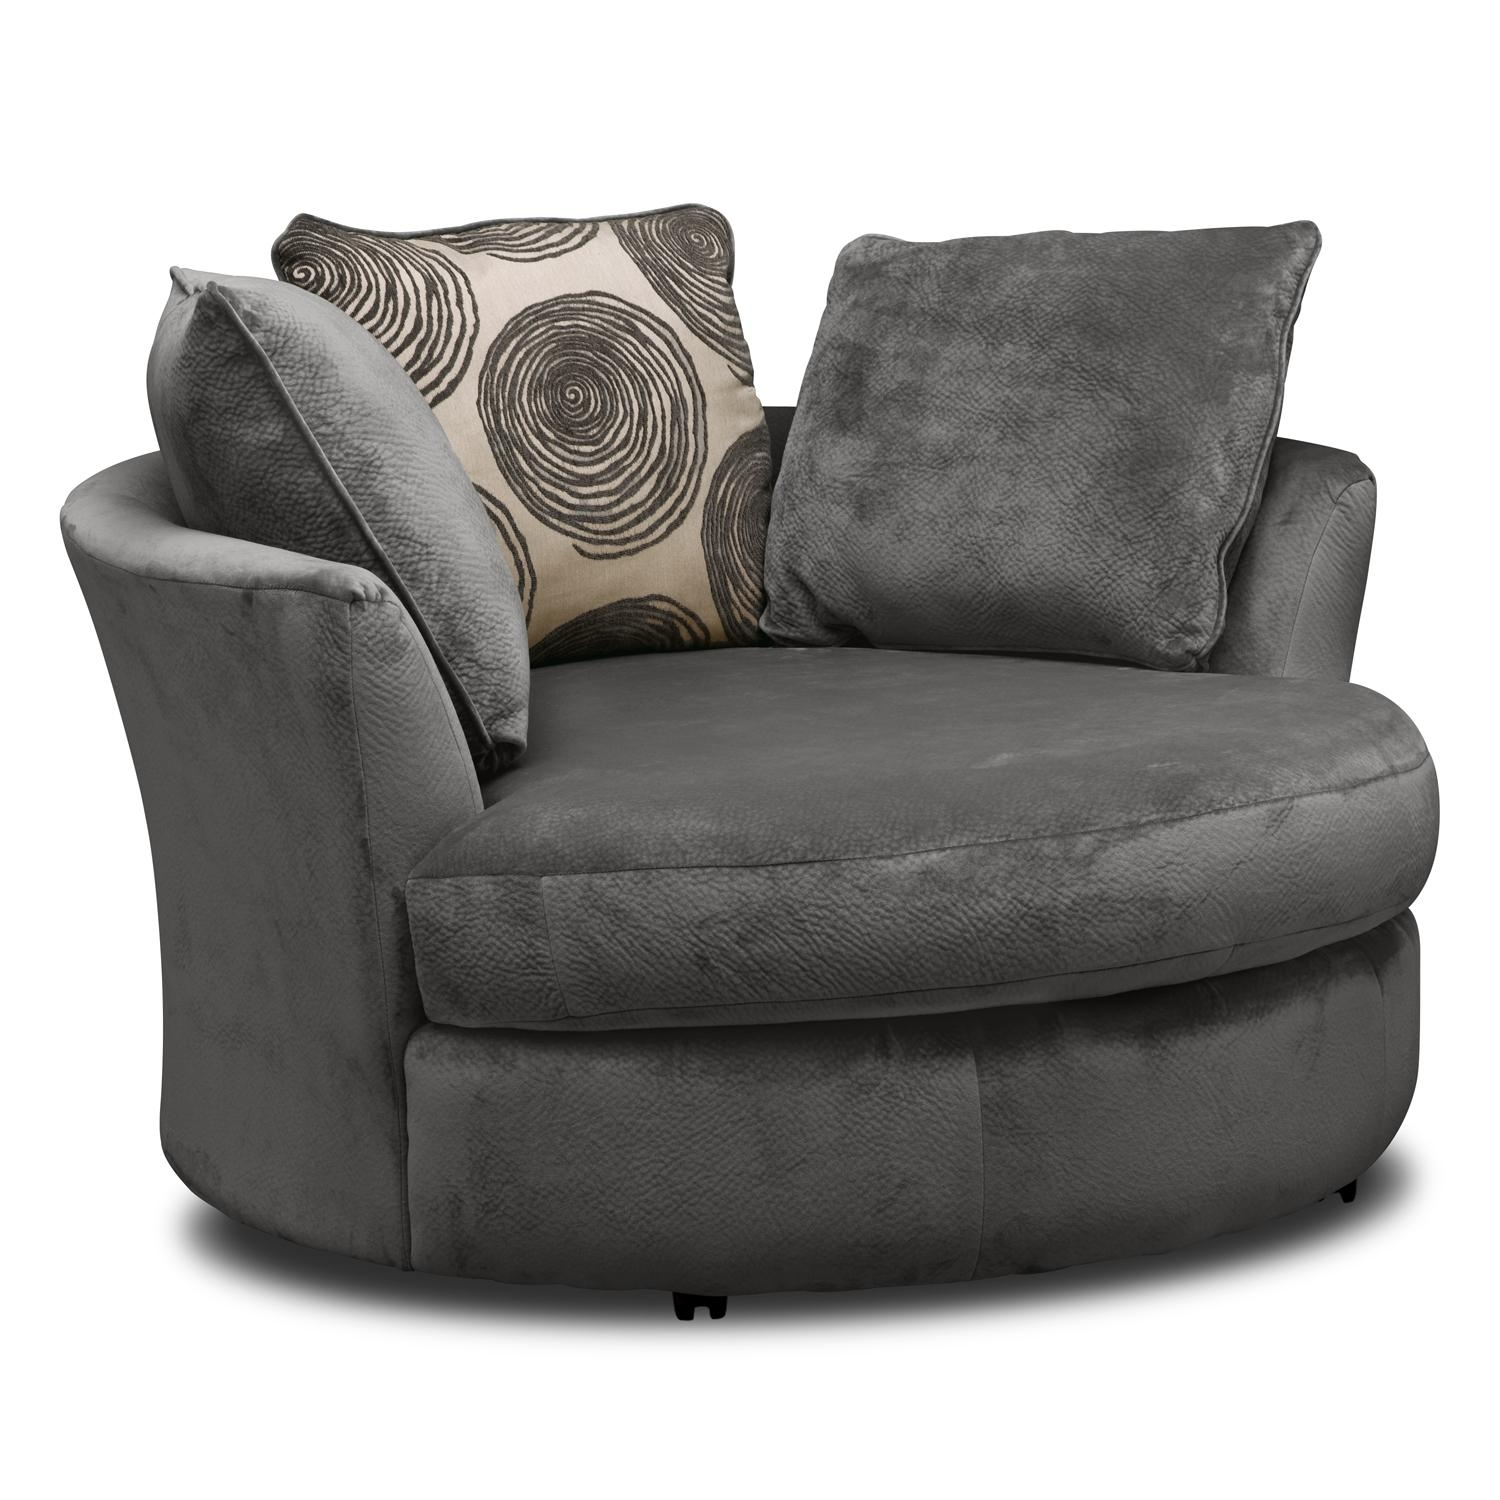 Round Sofa Chair Throughout Large Sofa Chairs (Image 15 of 20)